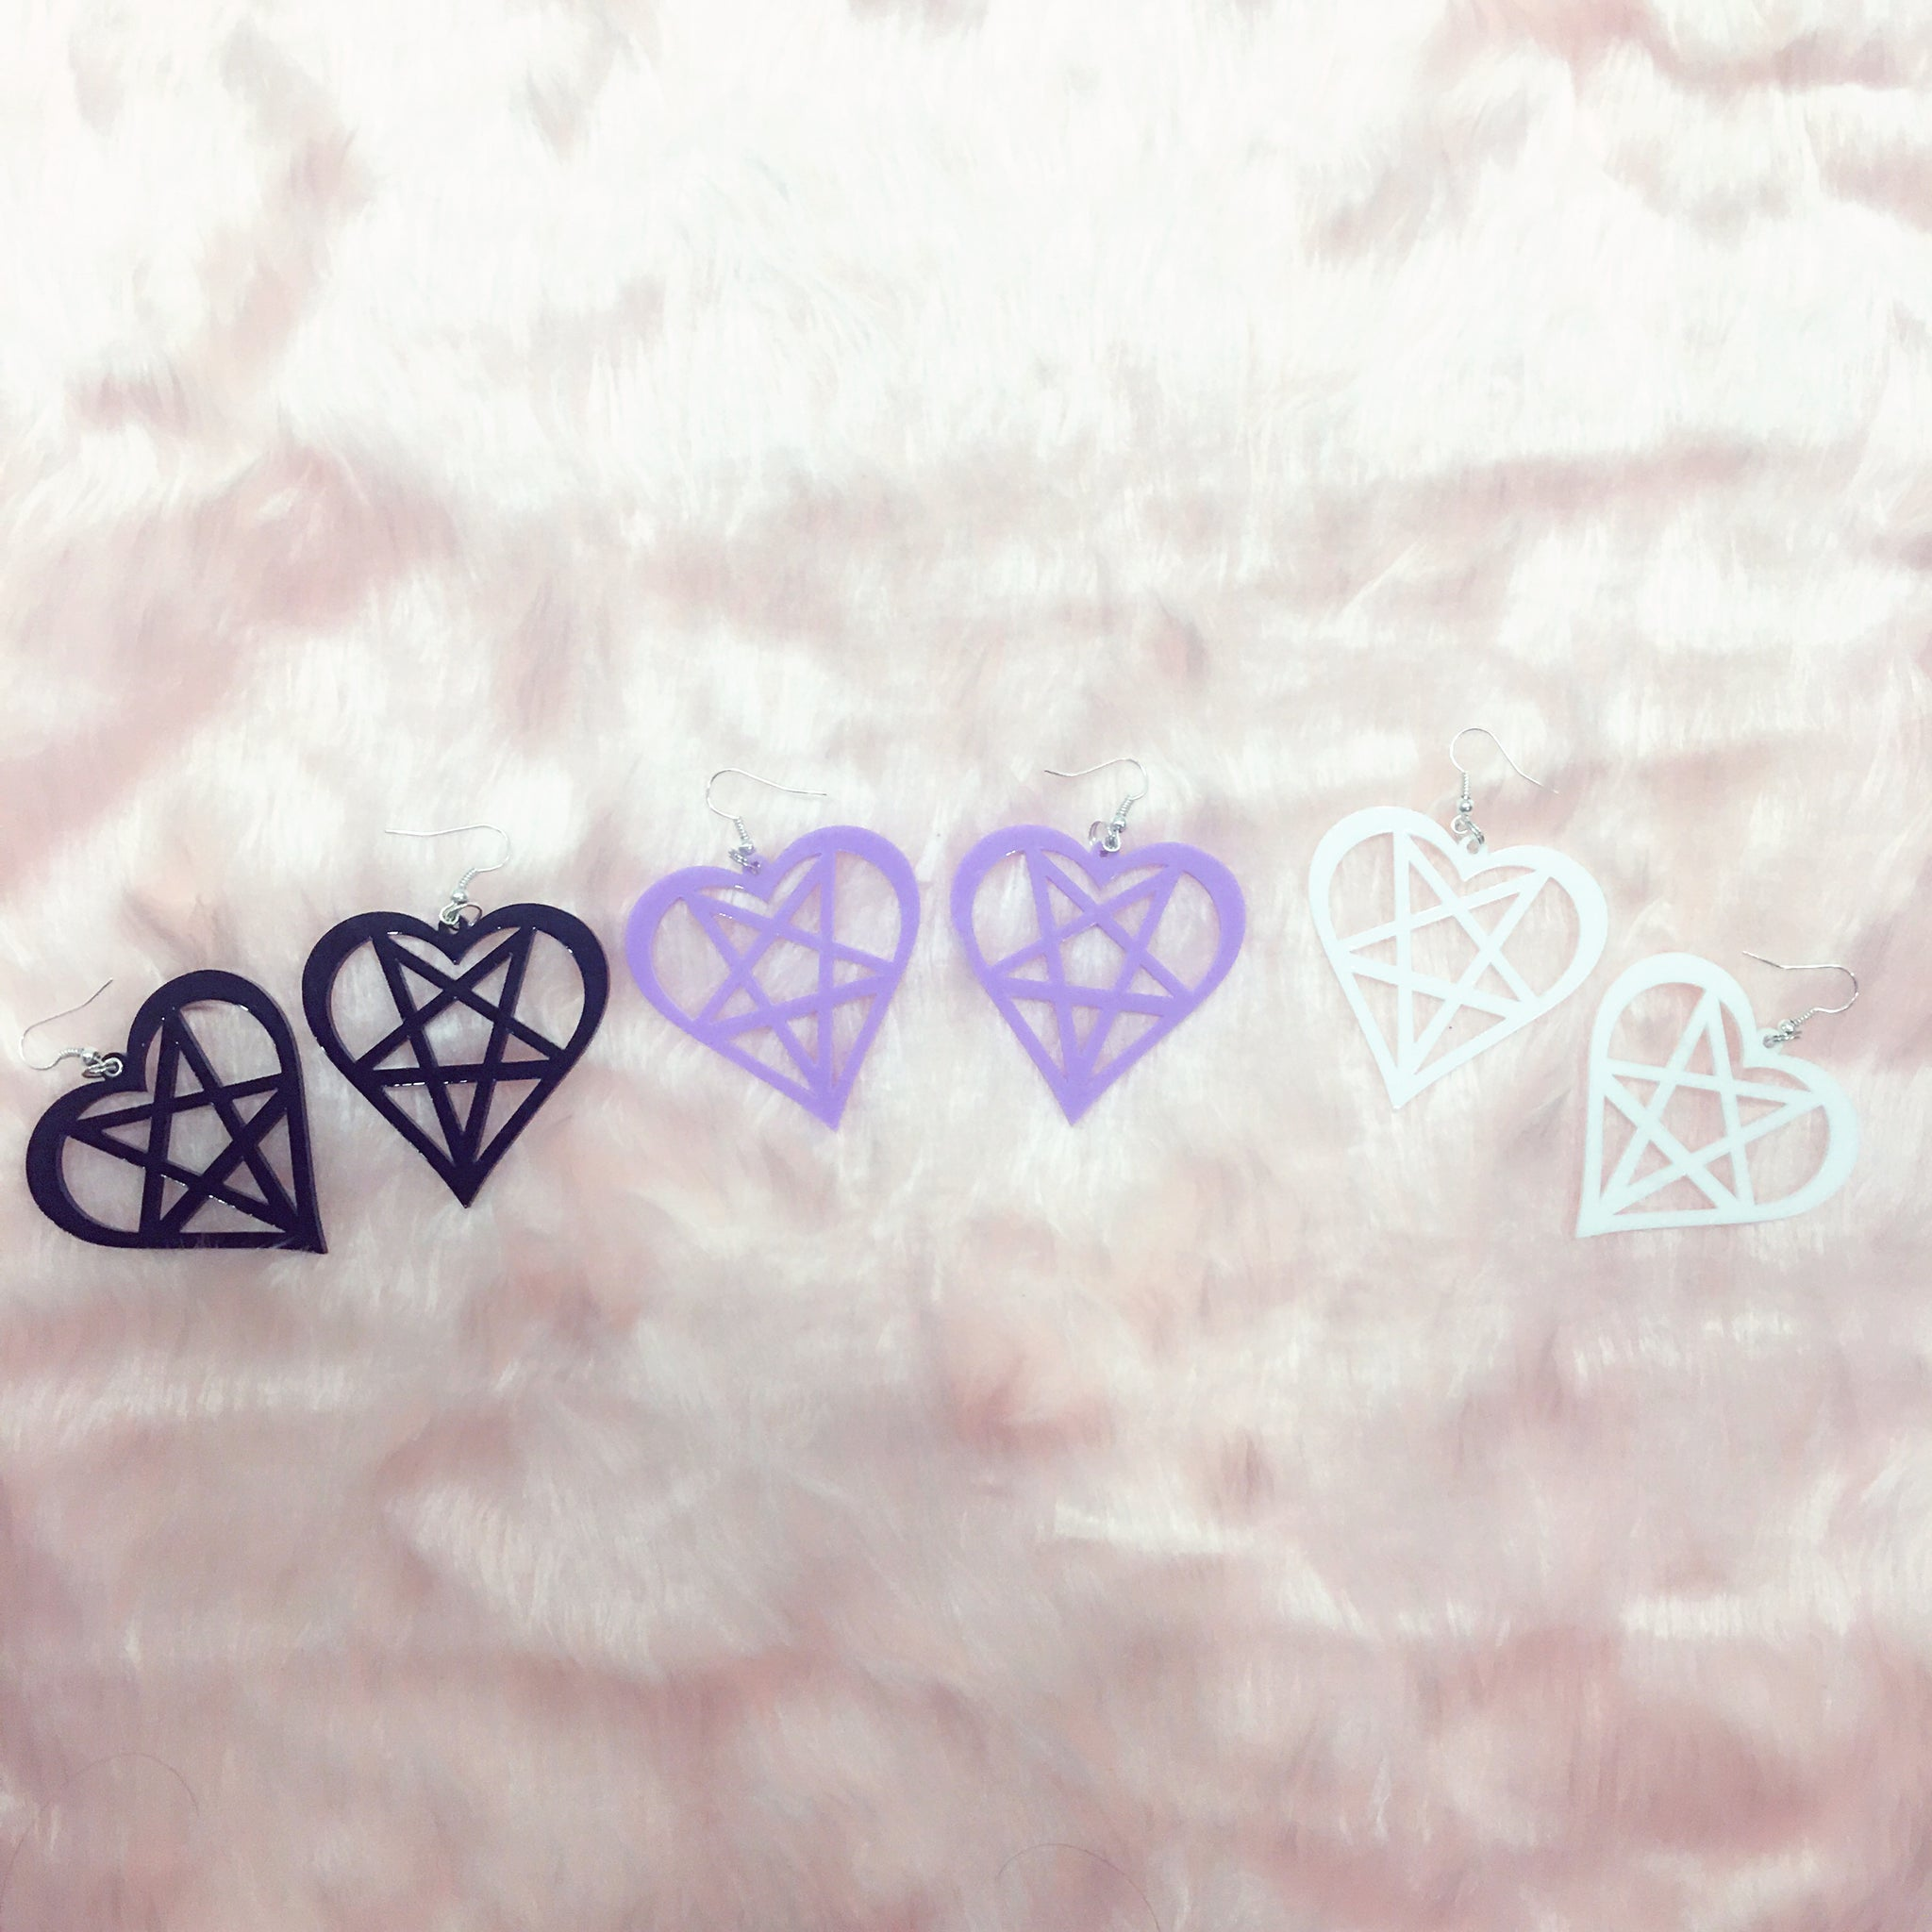 magical girl pentagram acrylic heart star earrings at BABY VOODOO - babyvoodoo.com - kawaii jewellery